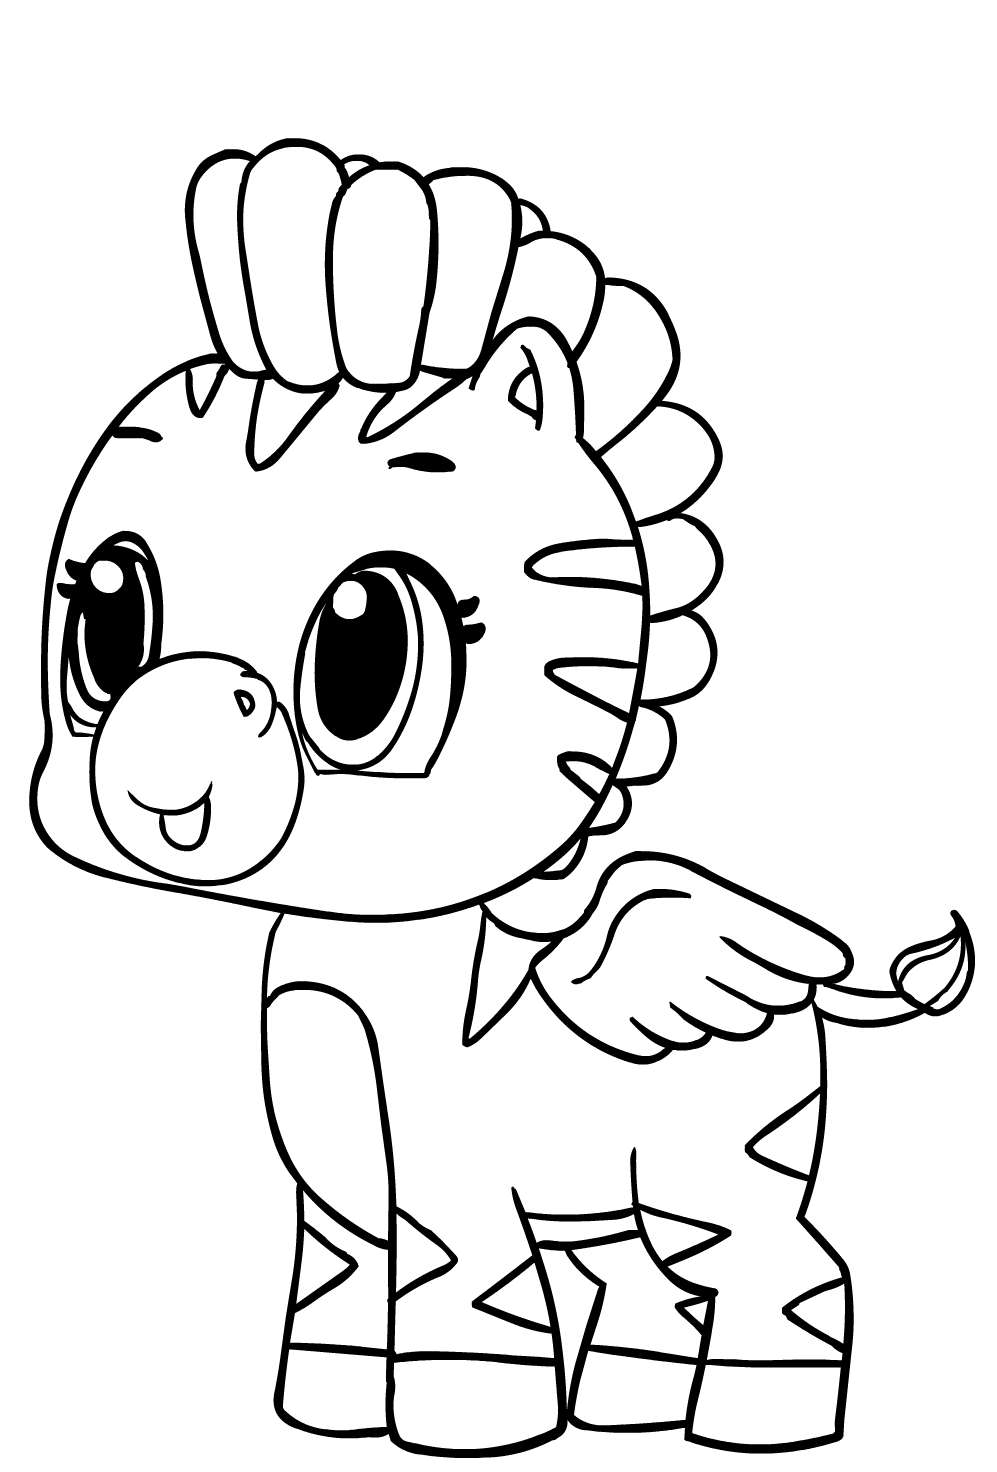 Hatchimals Coloring Page - Drawing 4